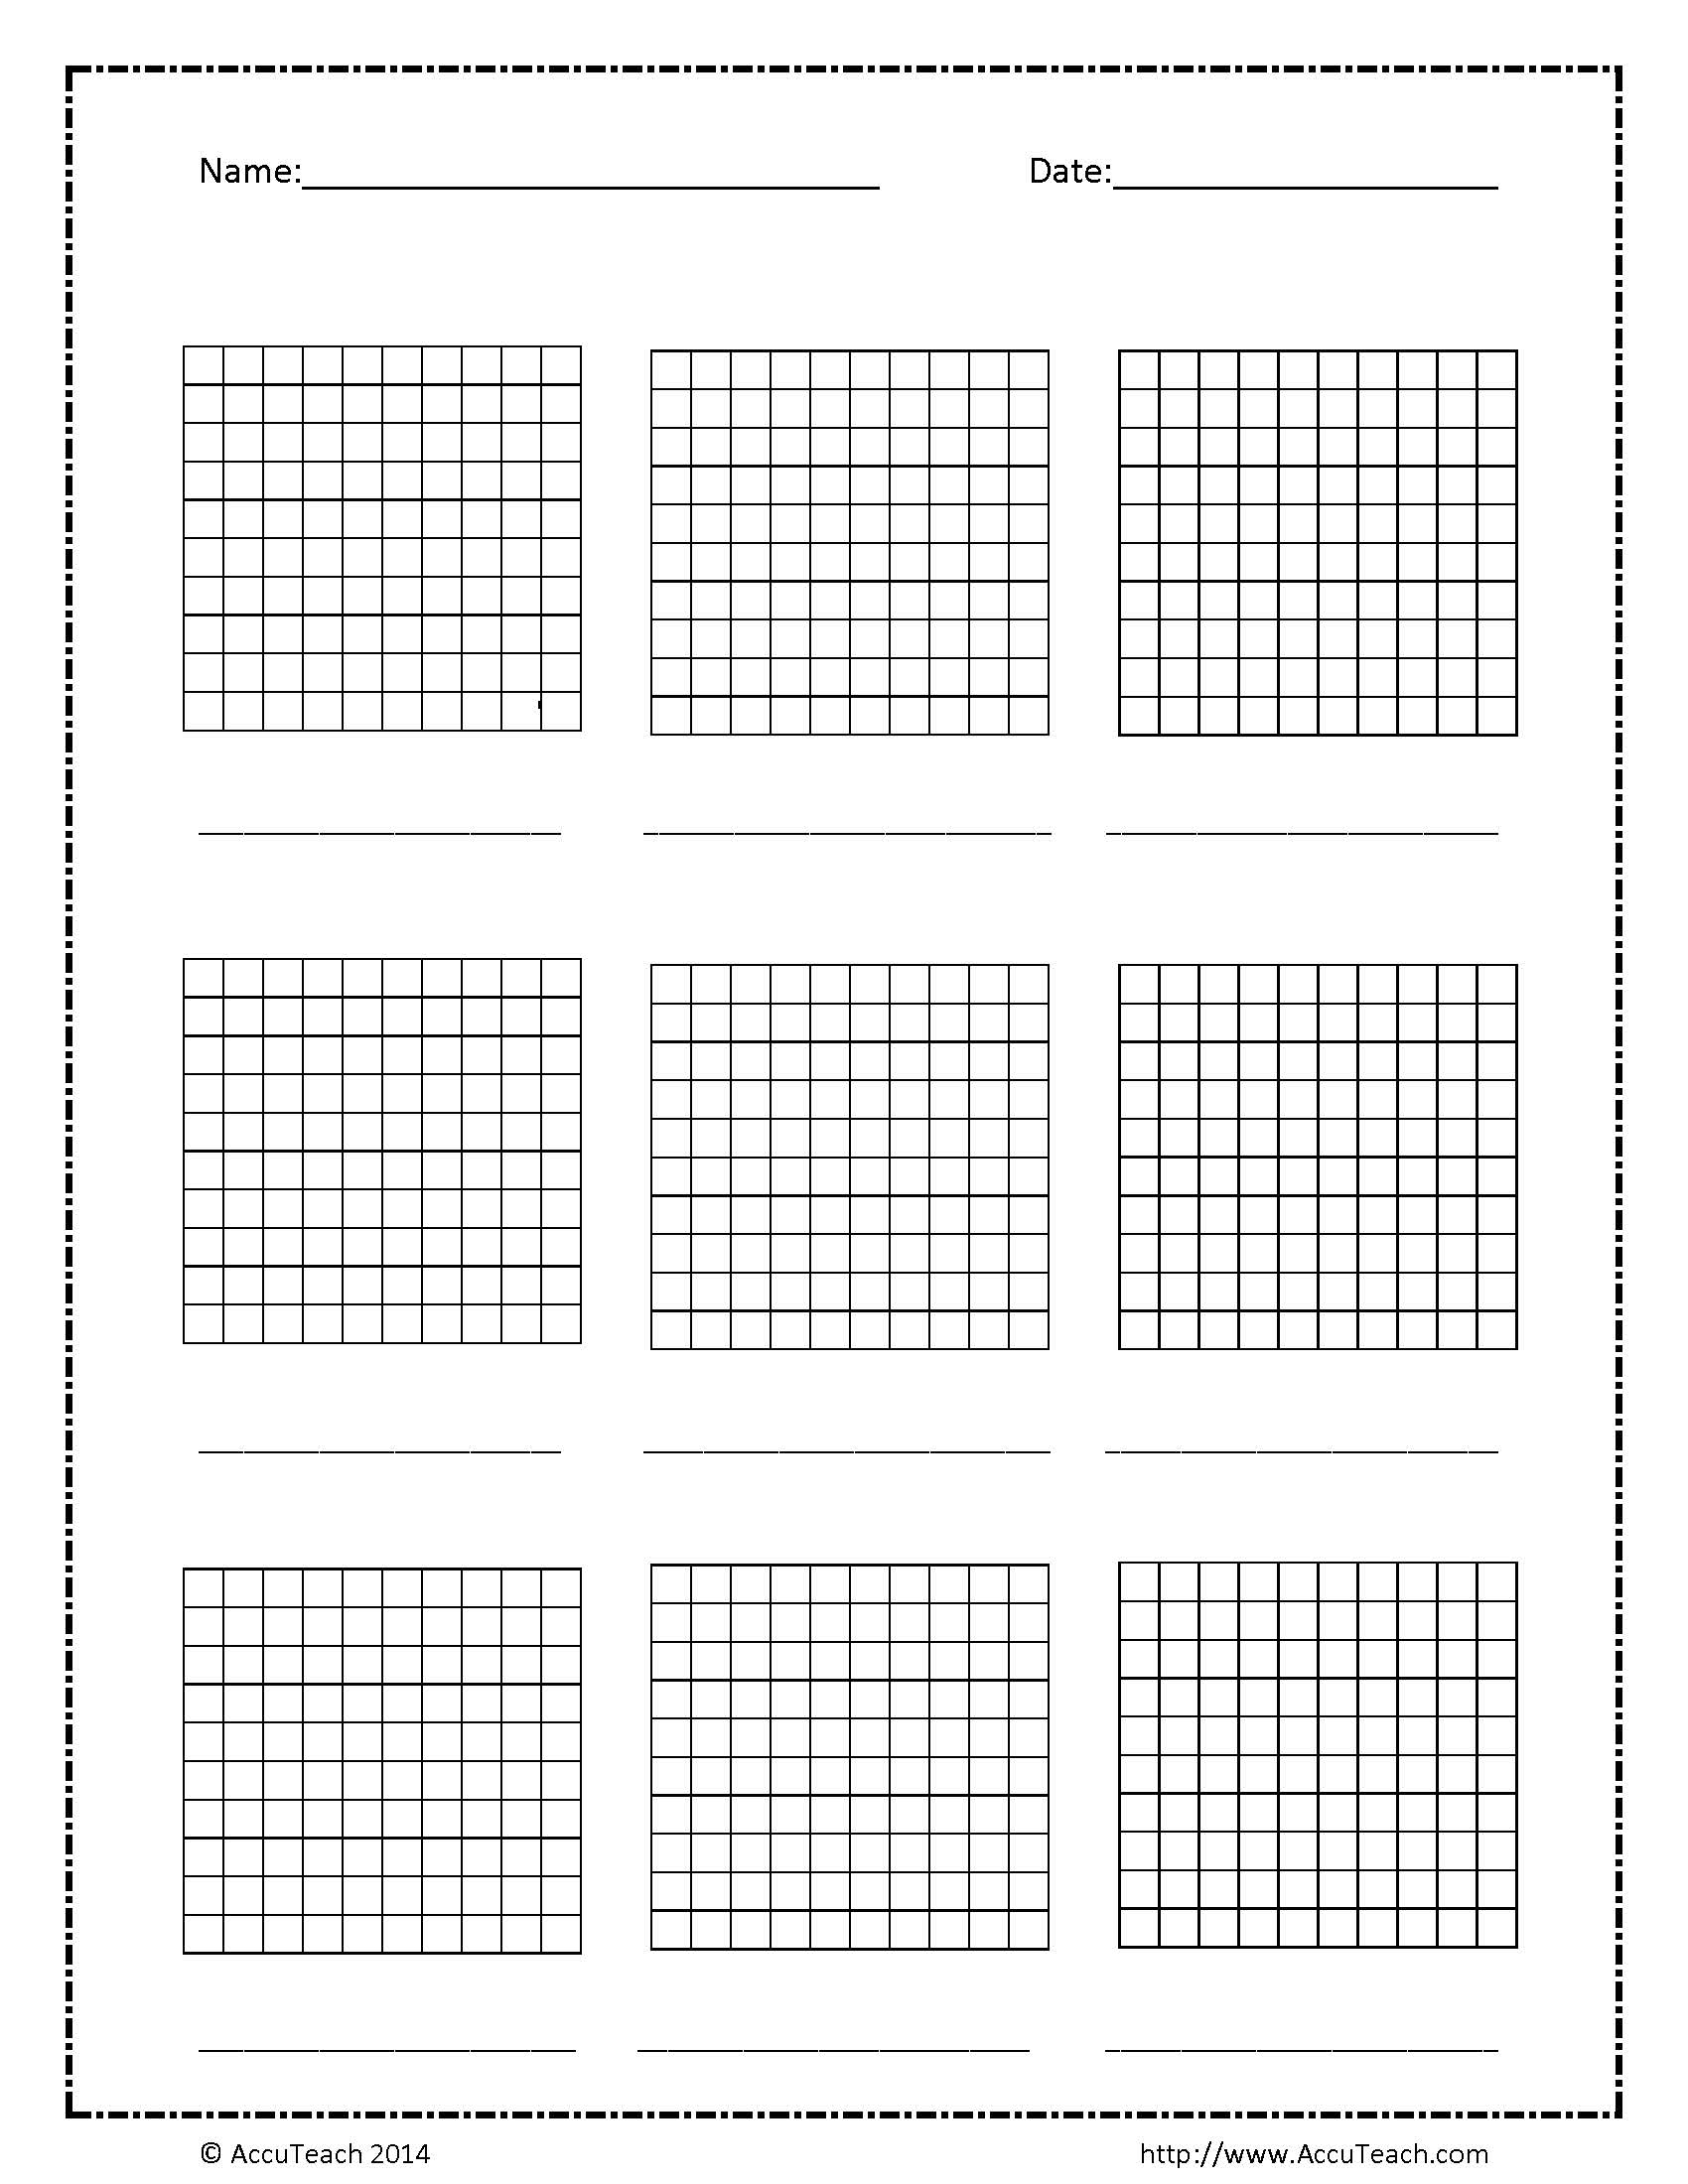 Handy image intended for printable hundredths grids